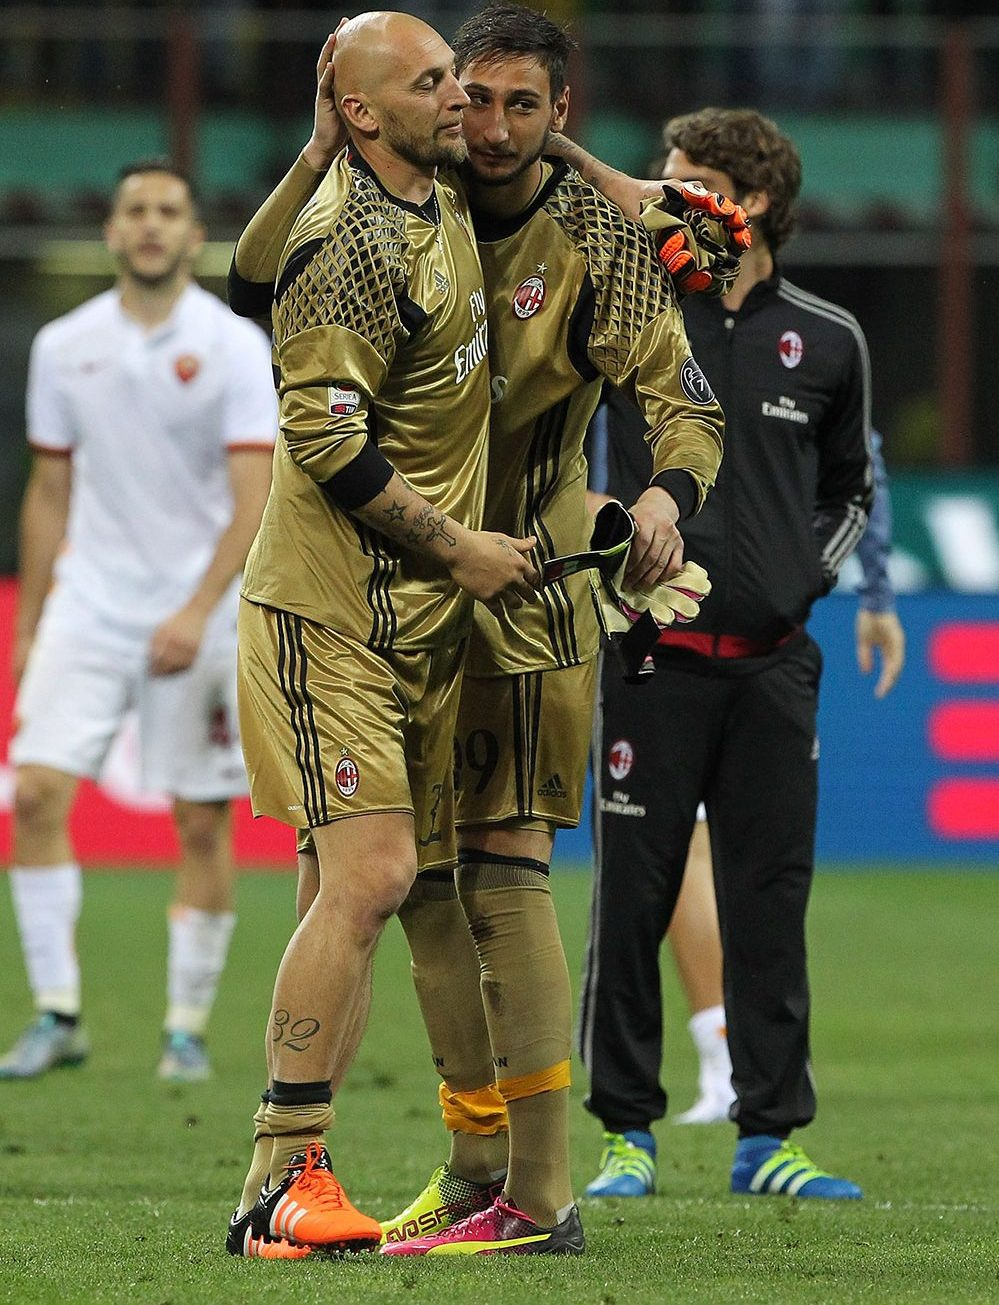 Christian Abbiati of AC Milan embraces Gianluigi Donnarumma at the end of the Serie A match between AC Milan and AS Roma at Stadio Giuseppe Meazza on May 14, 2016 in Milan, Italy. (Photo by Marco Luzzani/Getty Images)